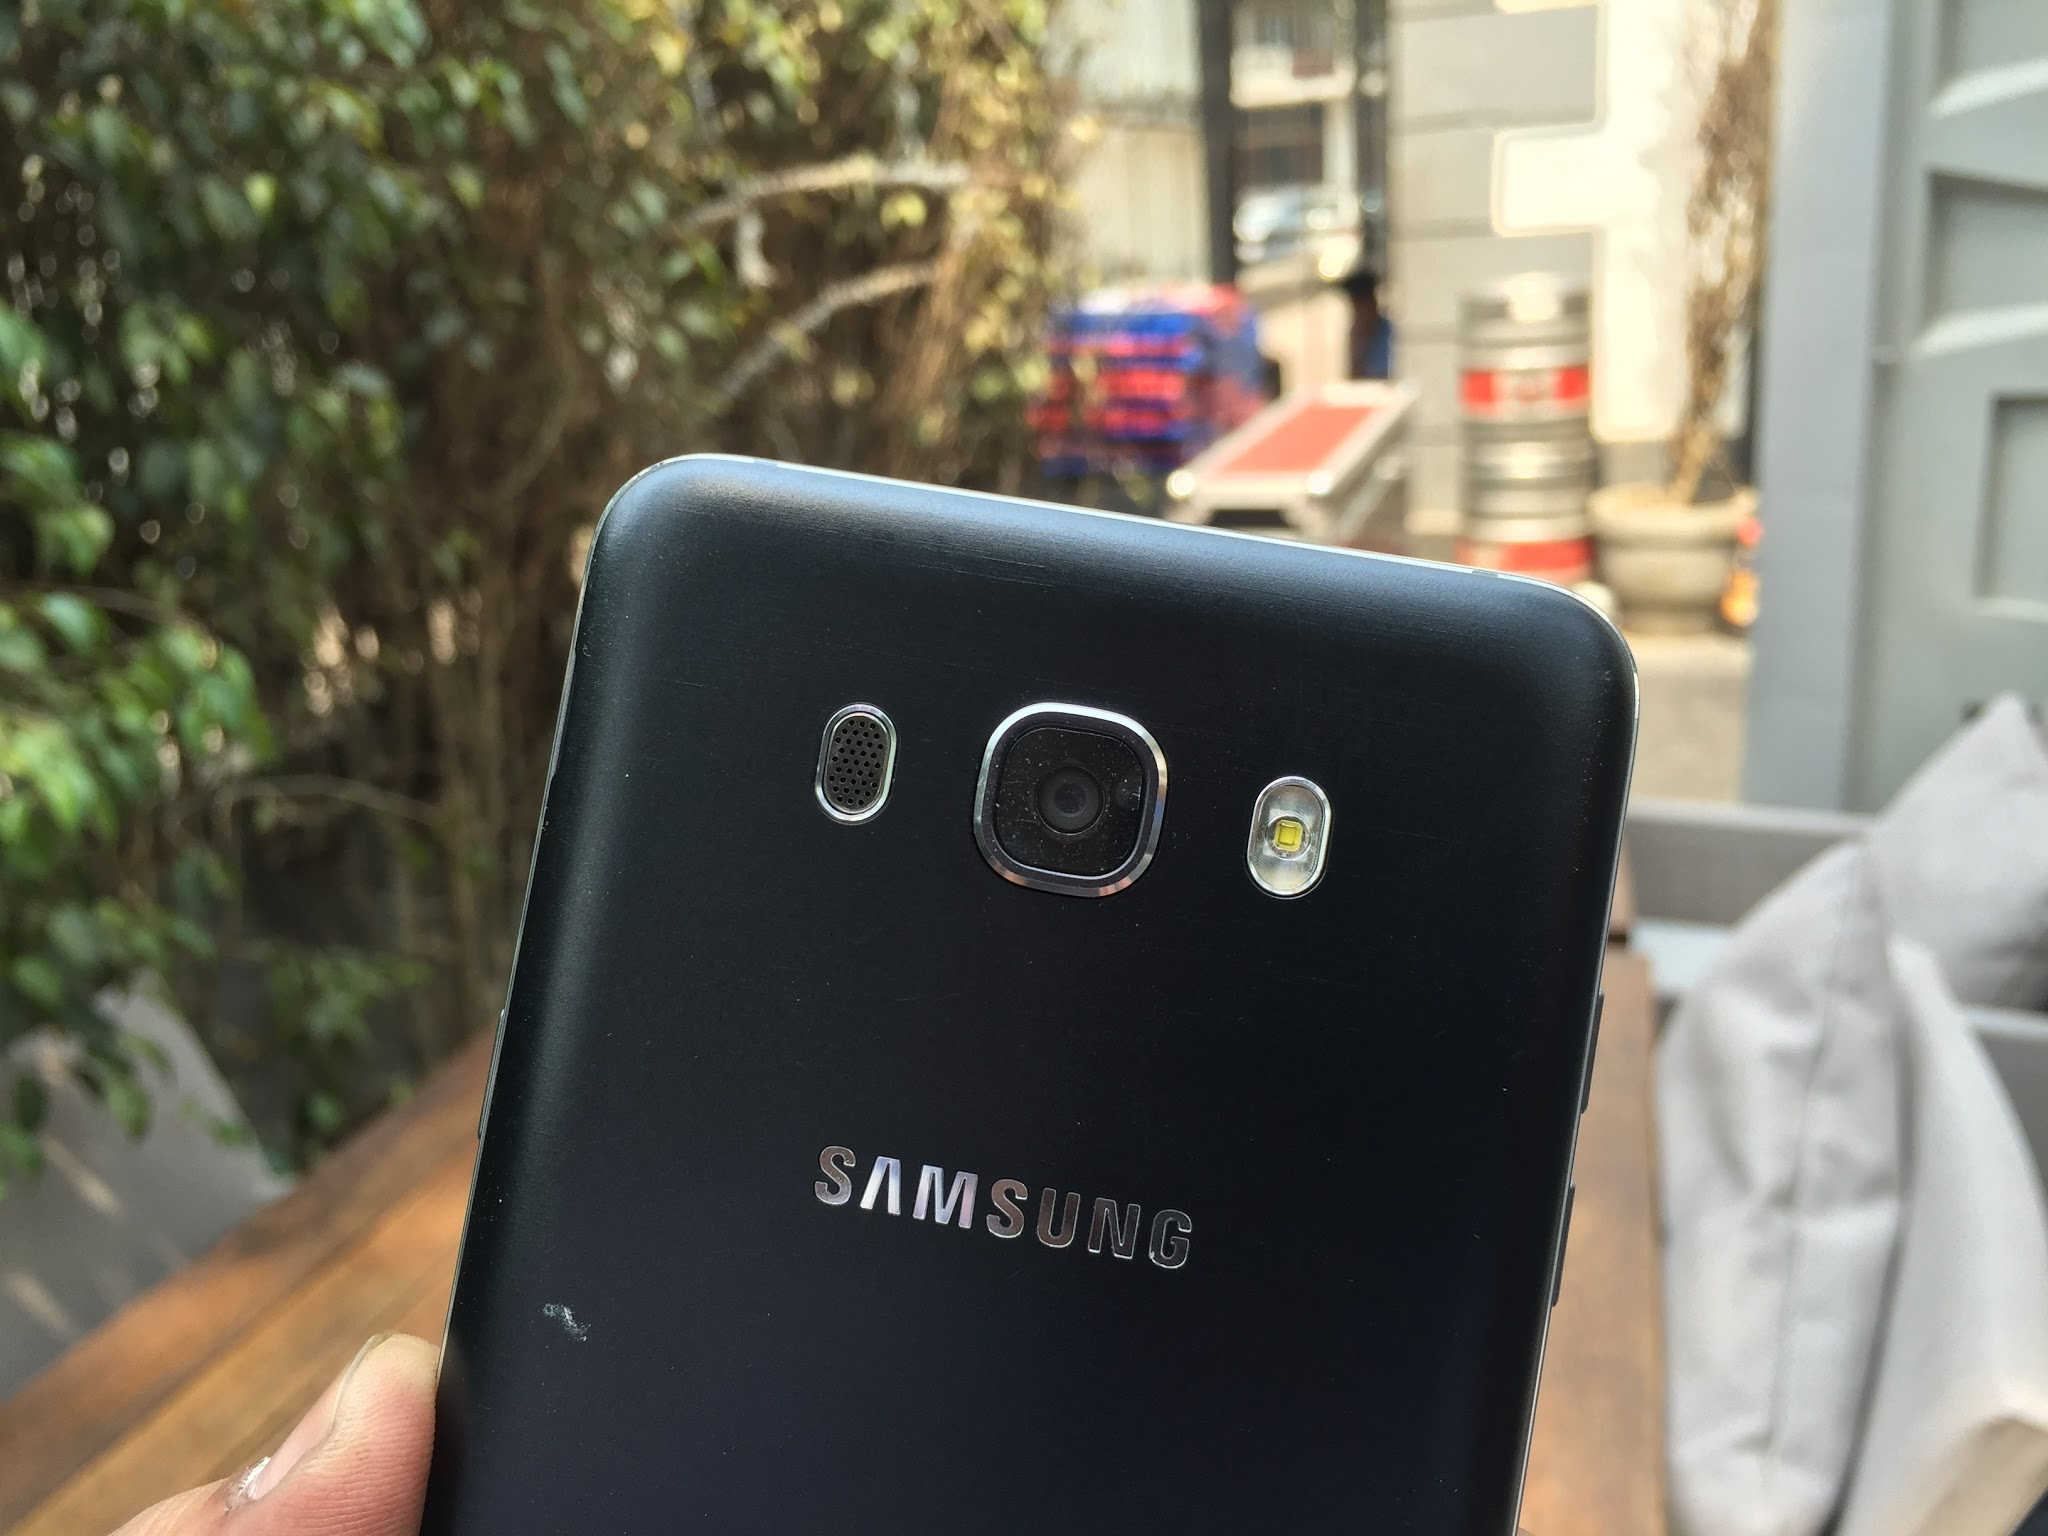 Galaxy J7 2016 Galaxy J5 2016 Camera Review Photo Samples